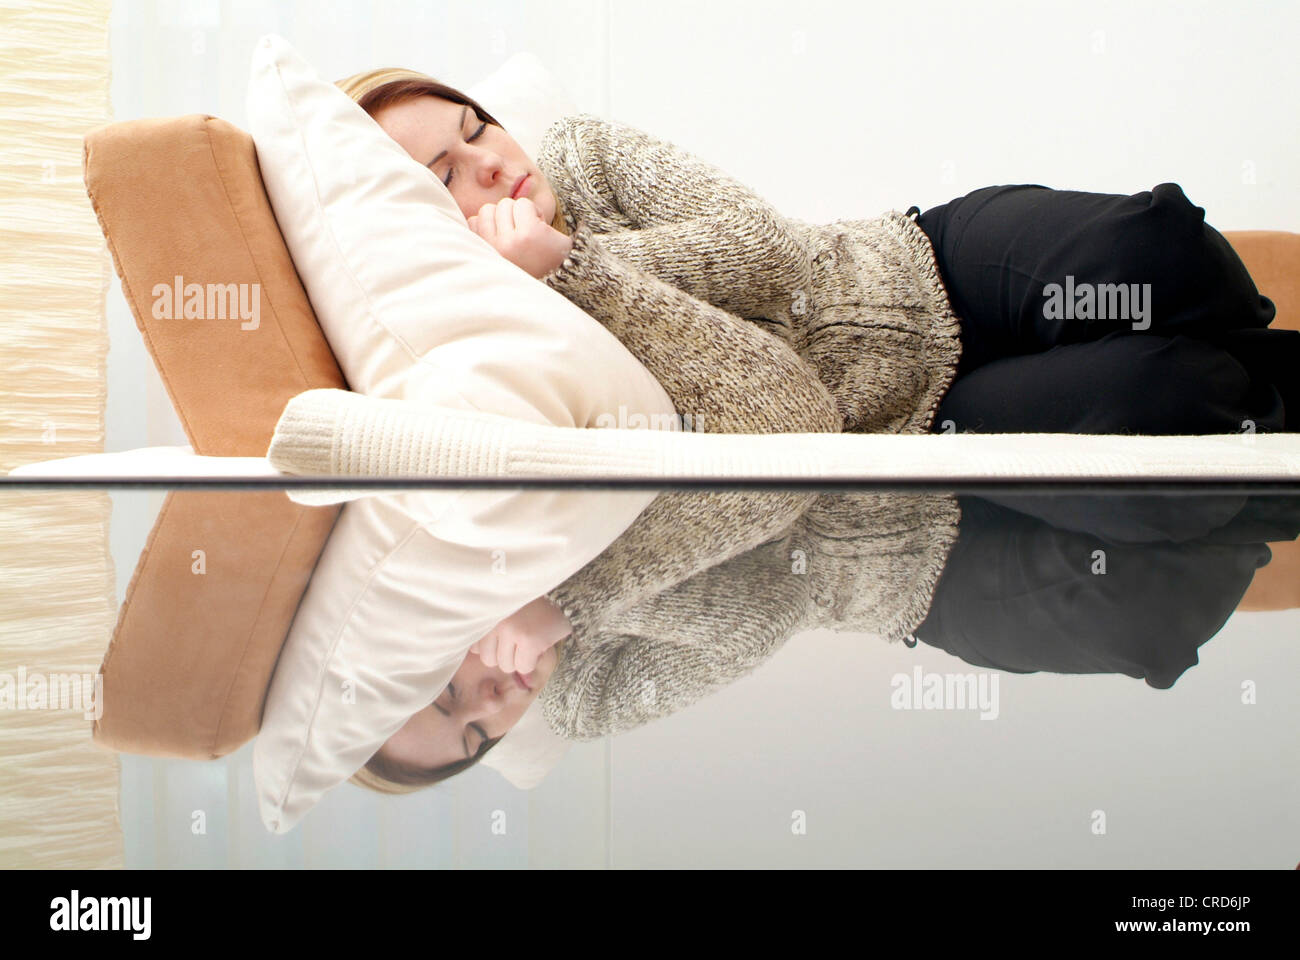 young woman sleeping on couch - Stock Image